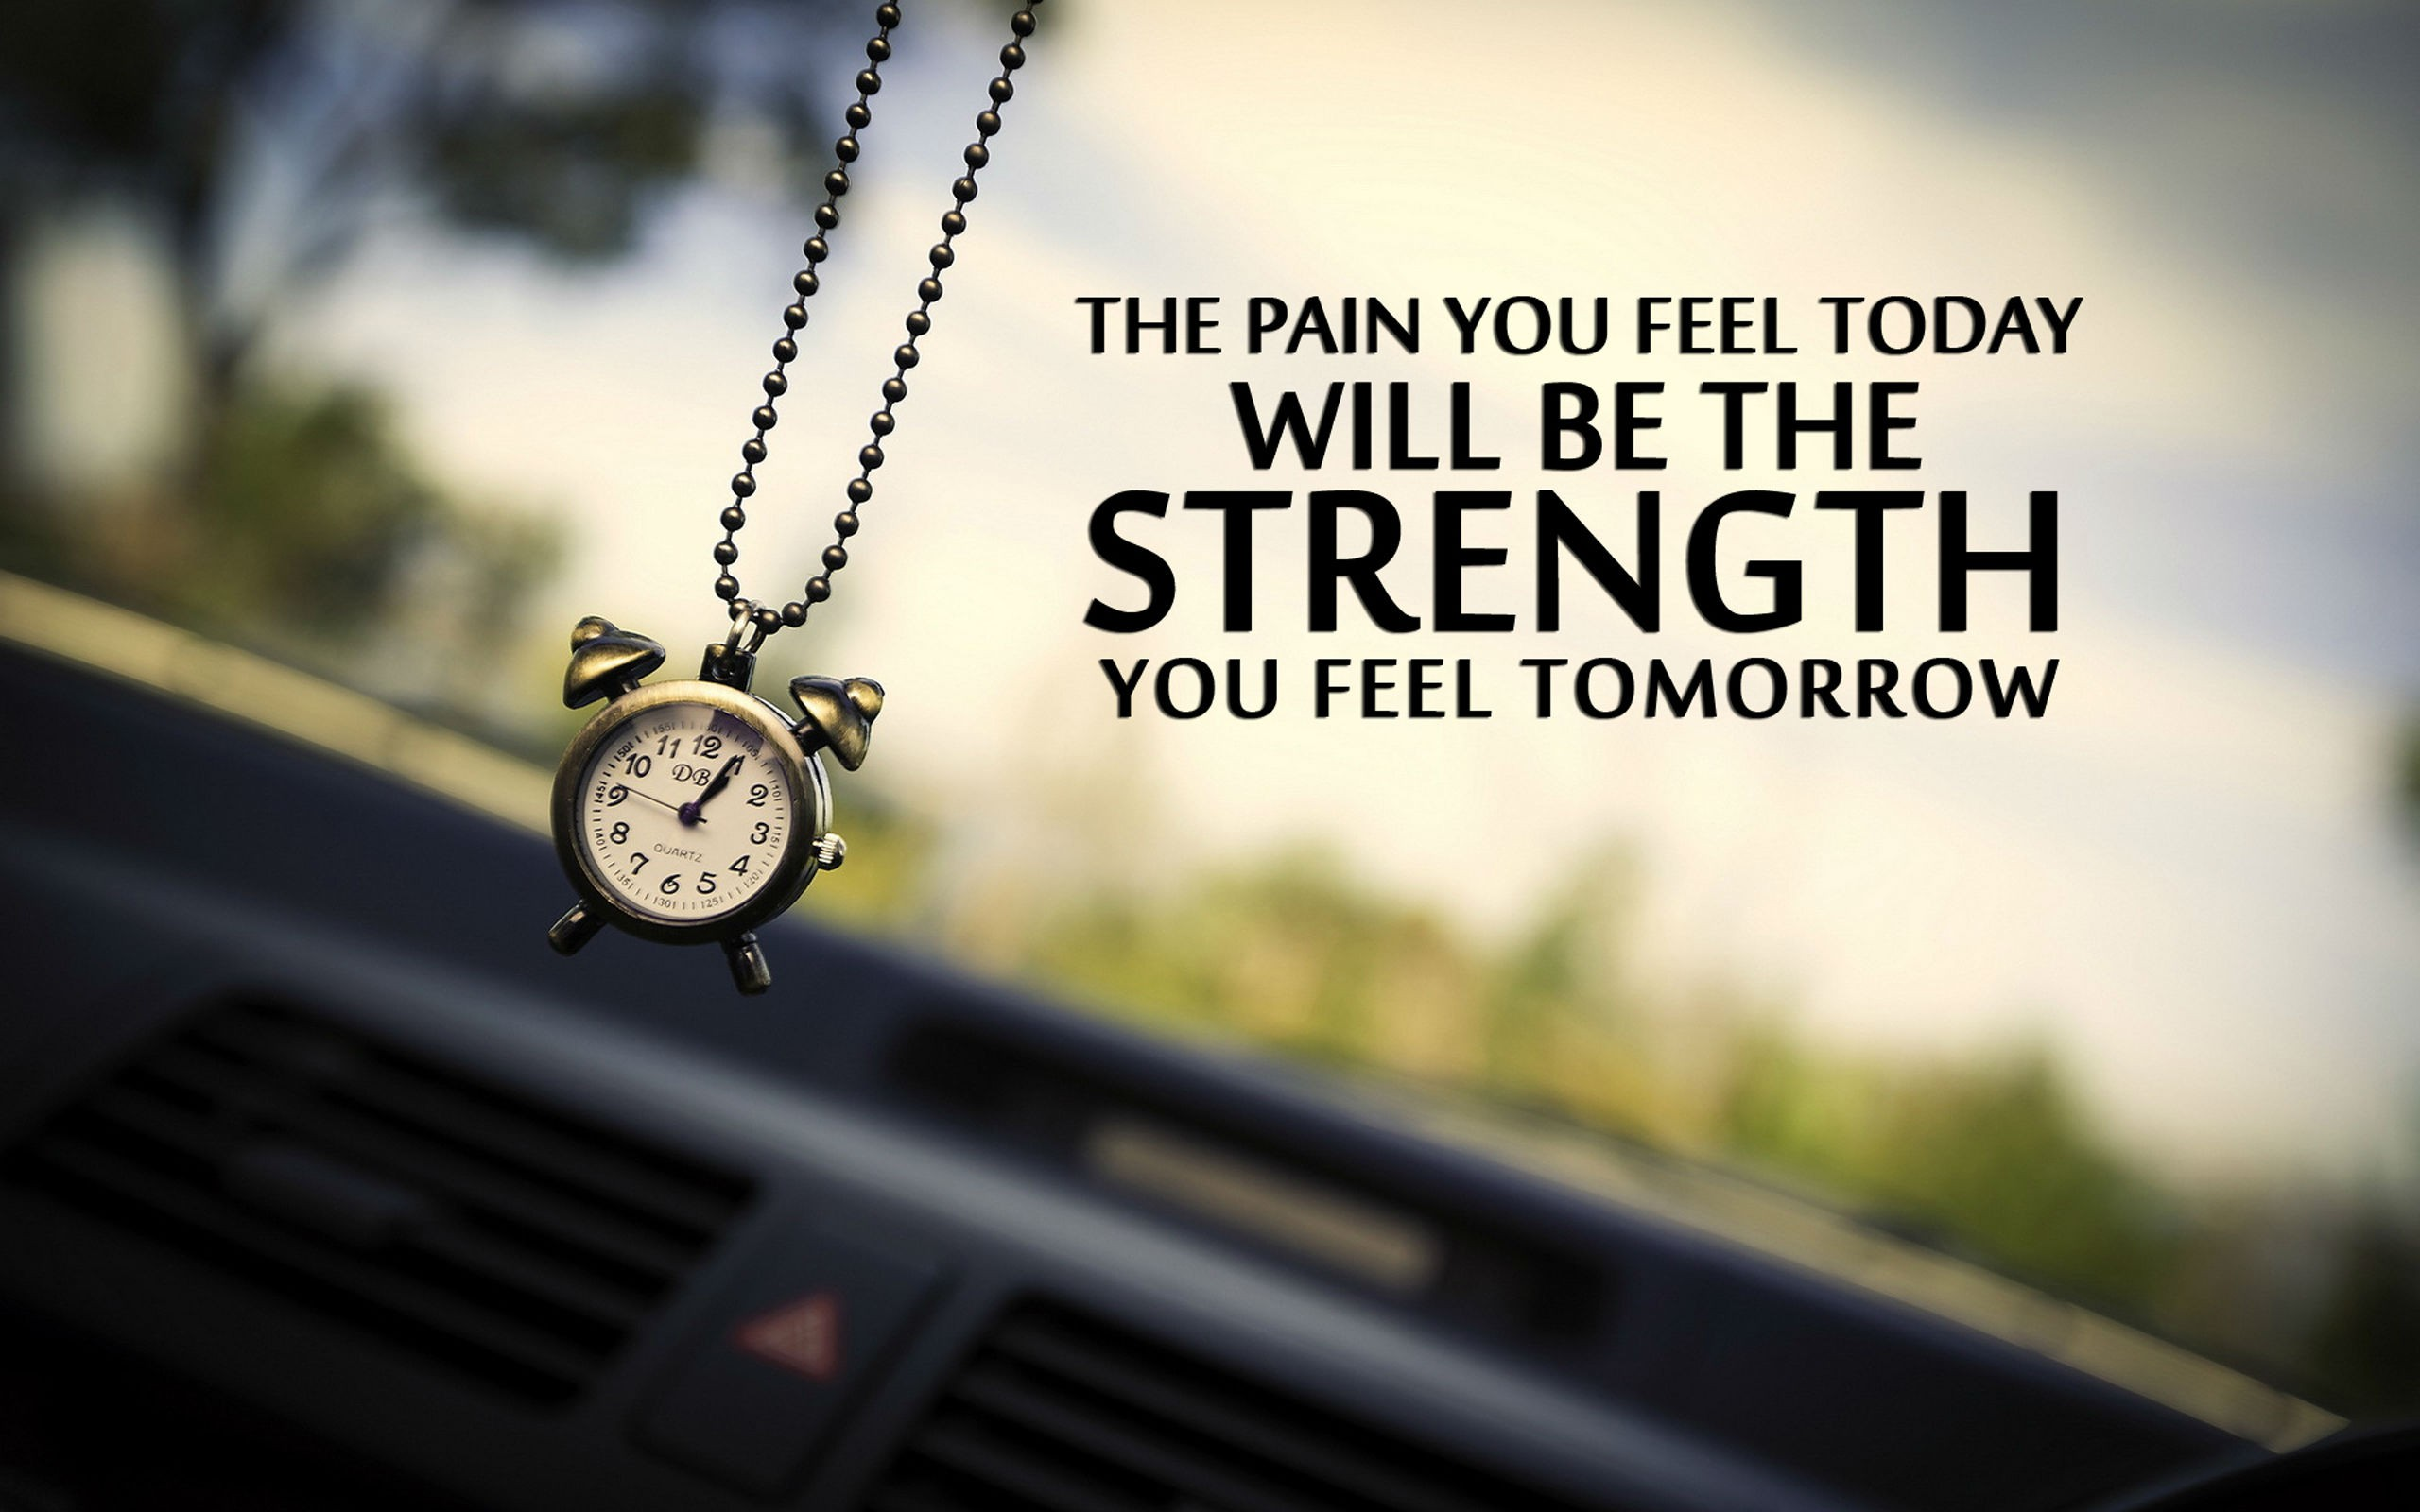 Inspirational Quotes Wallpapers HD For Desktop